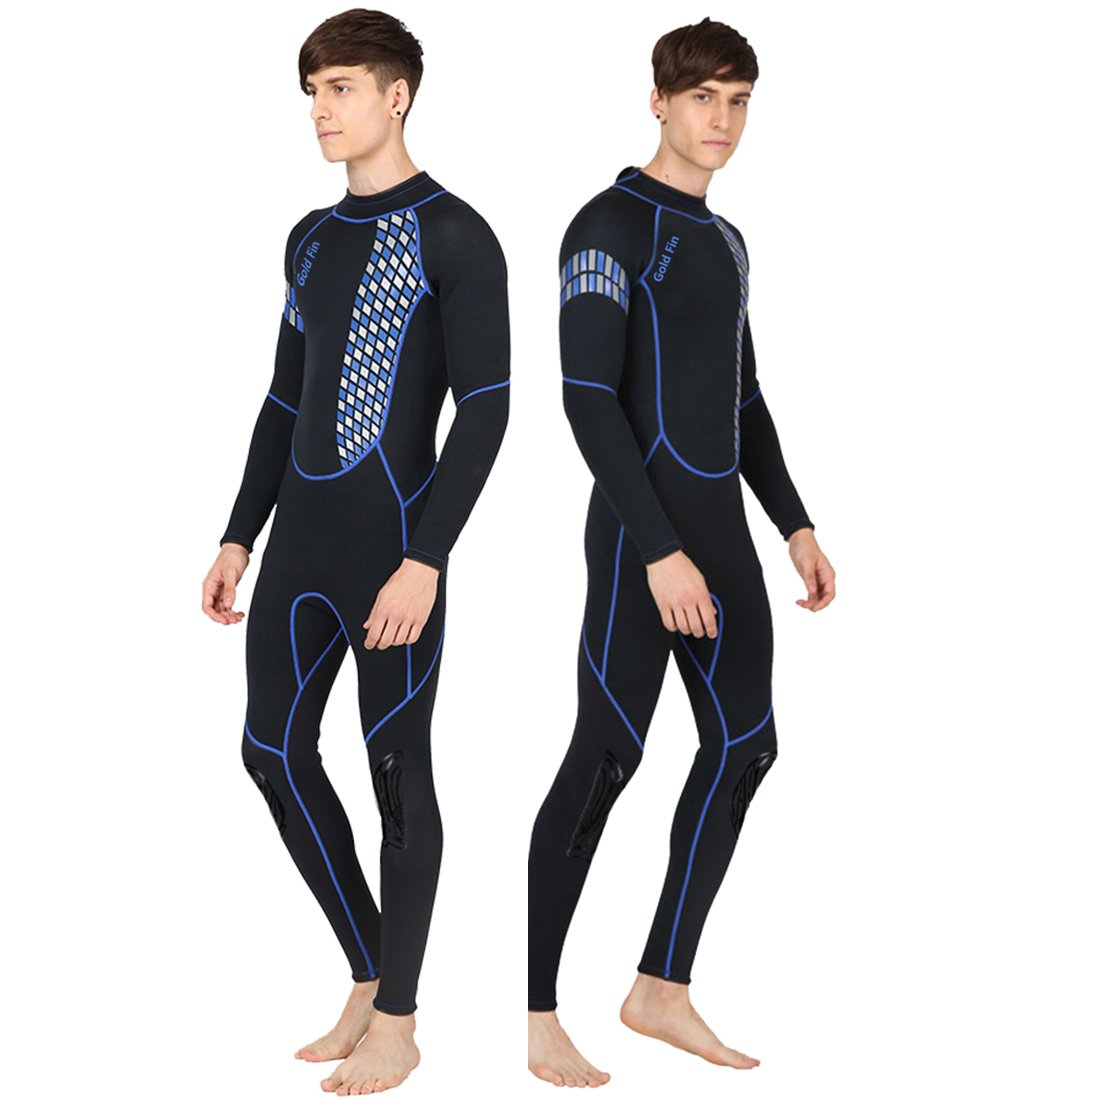 GoldFin Full Wetsuits 3mm Neoprene Wetsuit, Back Zip Long Sleeve for Diving Surfing Snorkeling-One Piece Wet Suit for Men (Blue, 3XL)